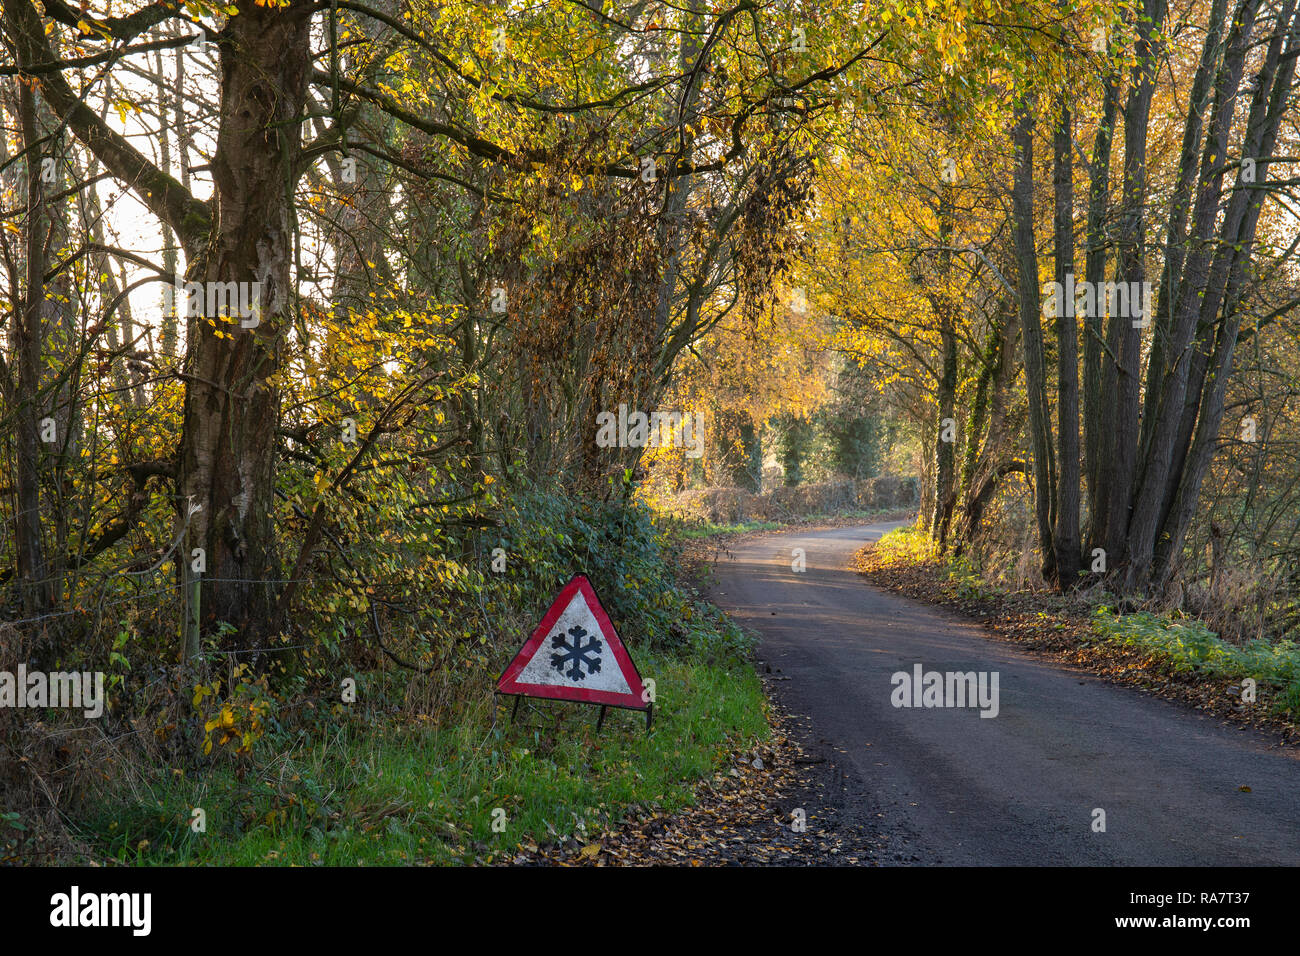 Ice on road traffic warning sign in the Cheshire countryside - Stock Image